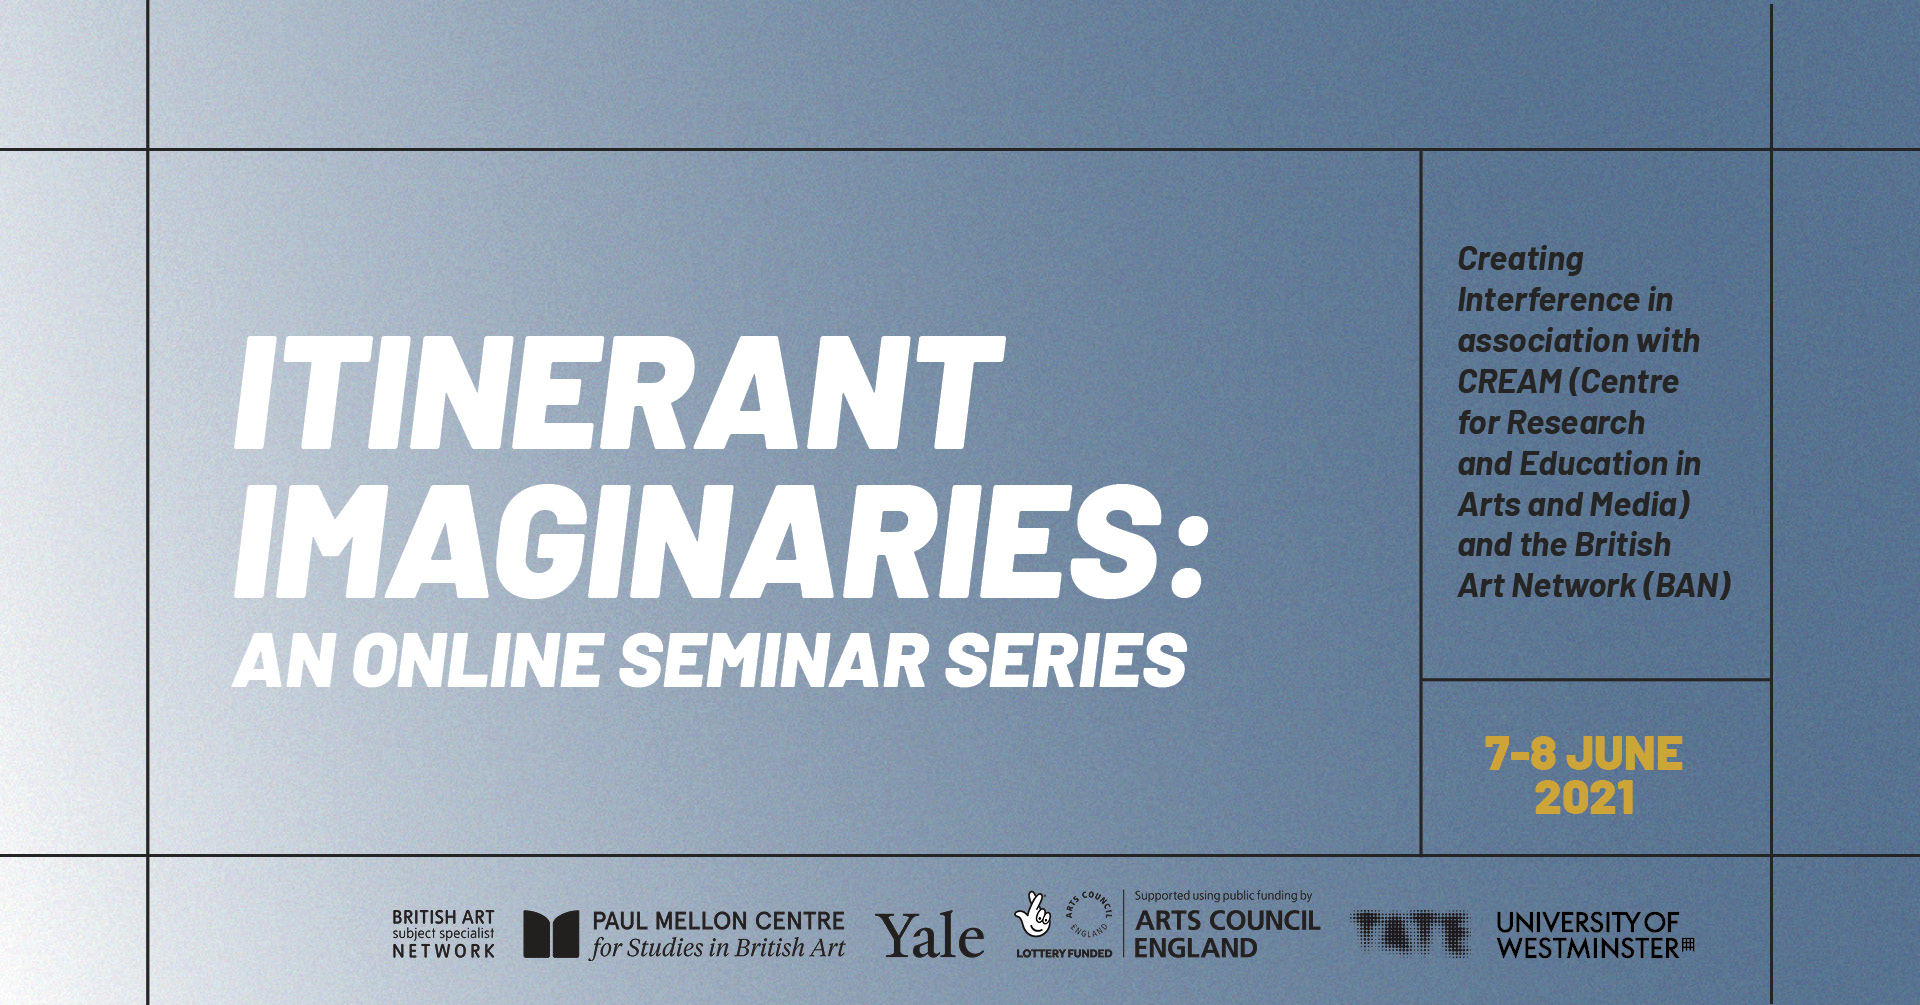 Flyer image with details of Itinerant Imaginaries seminar